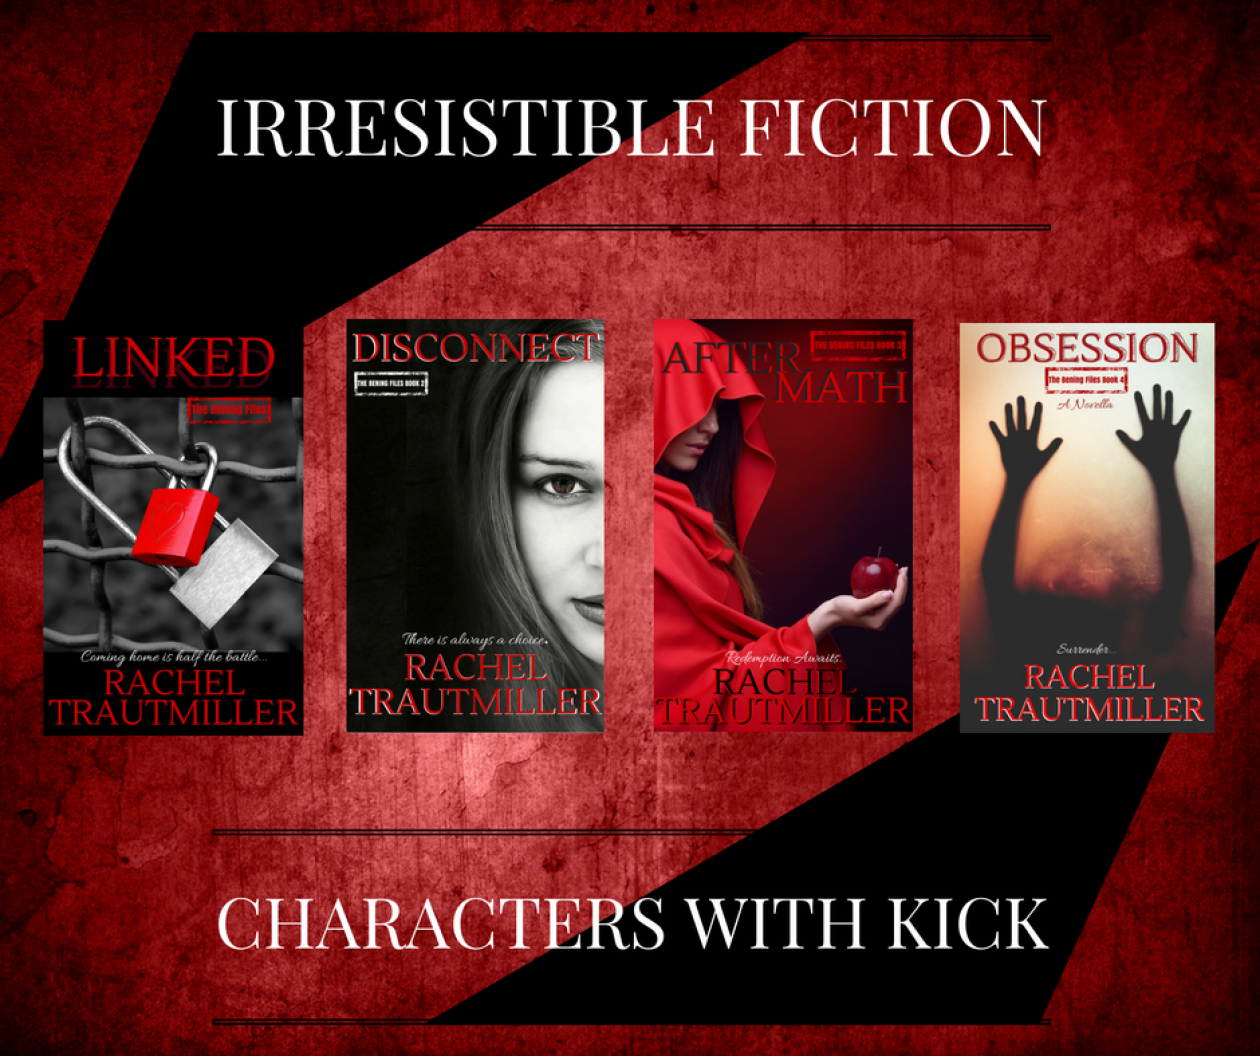 IRRESISTIBLE FICTION & CHARACTERS WITH KICK